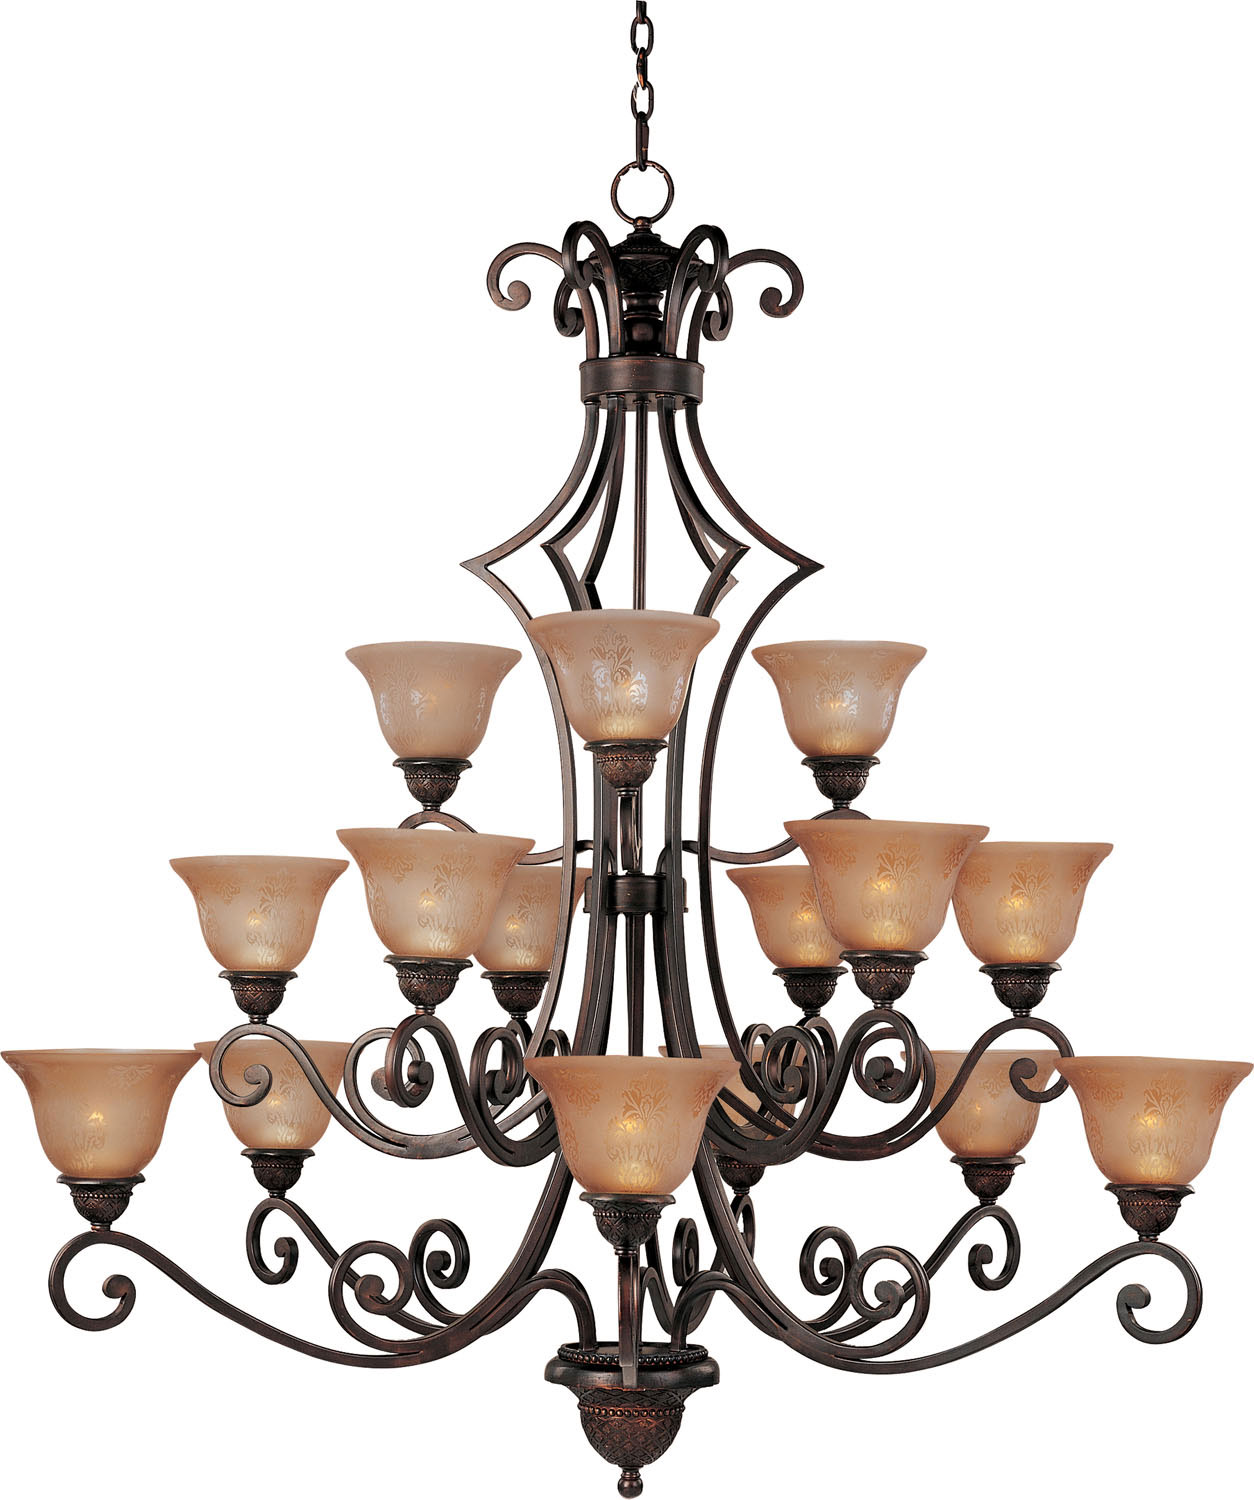 15 Light Chandelier from the Symphony collection by Maxim 11239SAOI